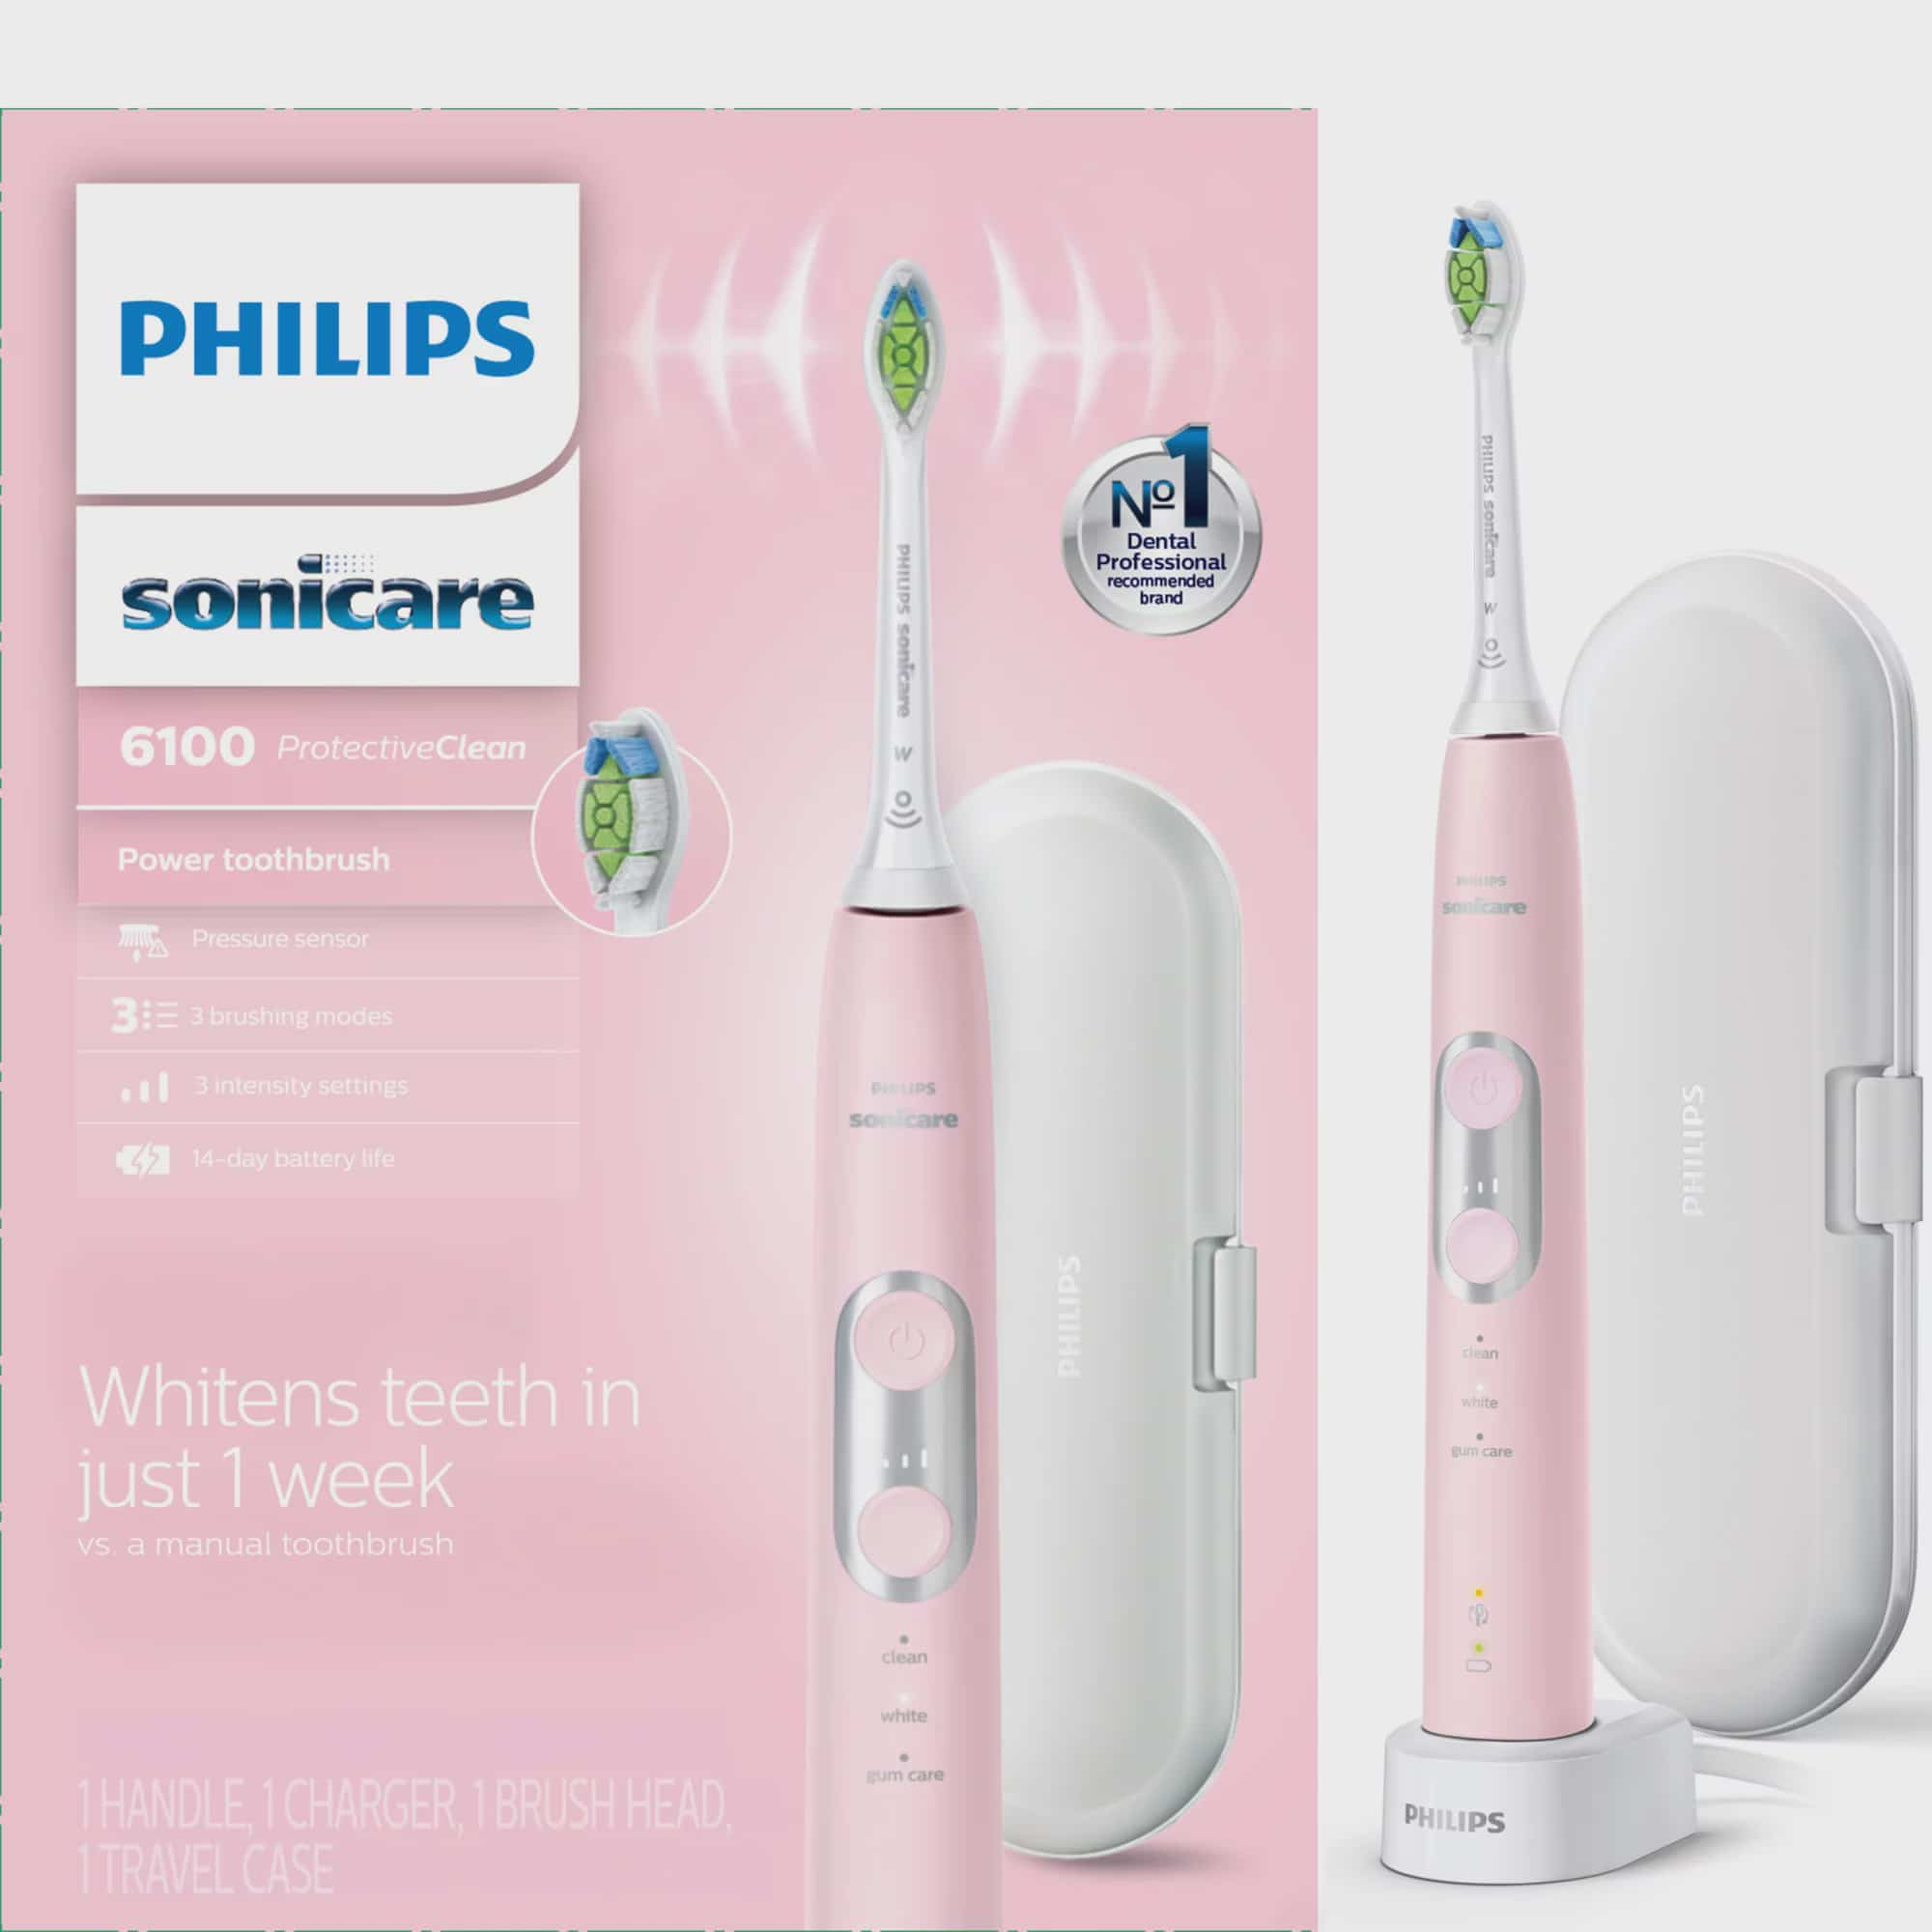 Philips Sonicare ProtectiveClean 6100 Whitening, Rechargeable Electric Toothbrush, Pastel Pink HX6876/21